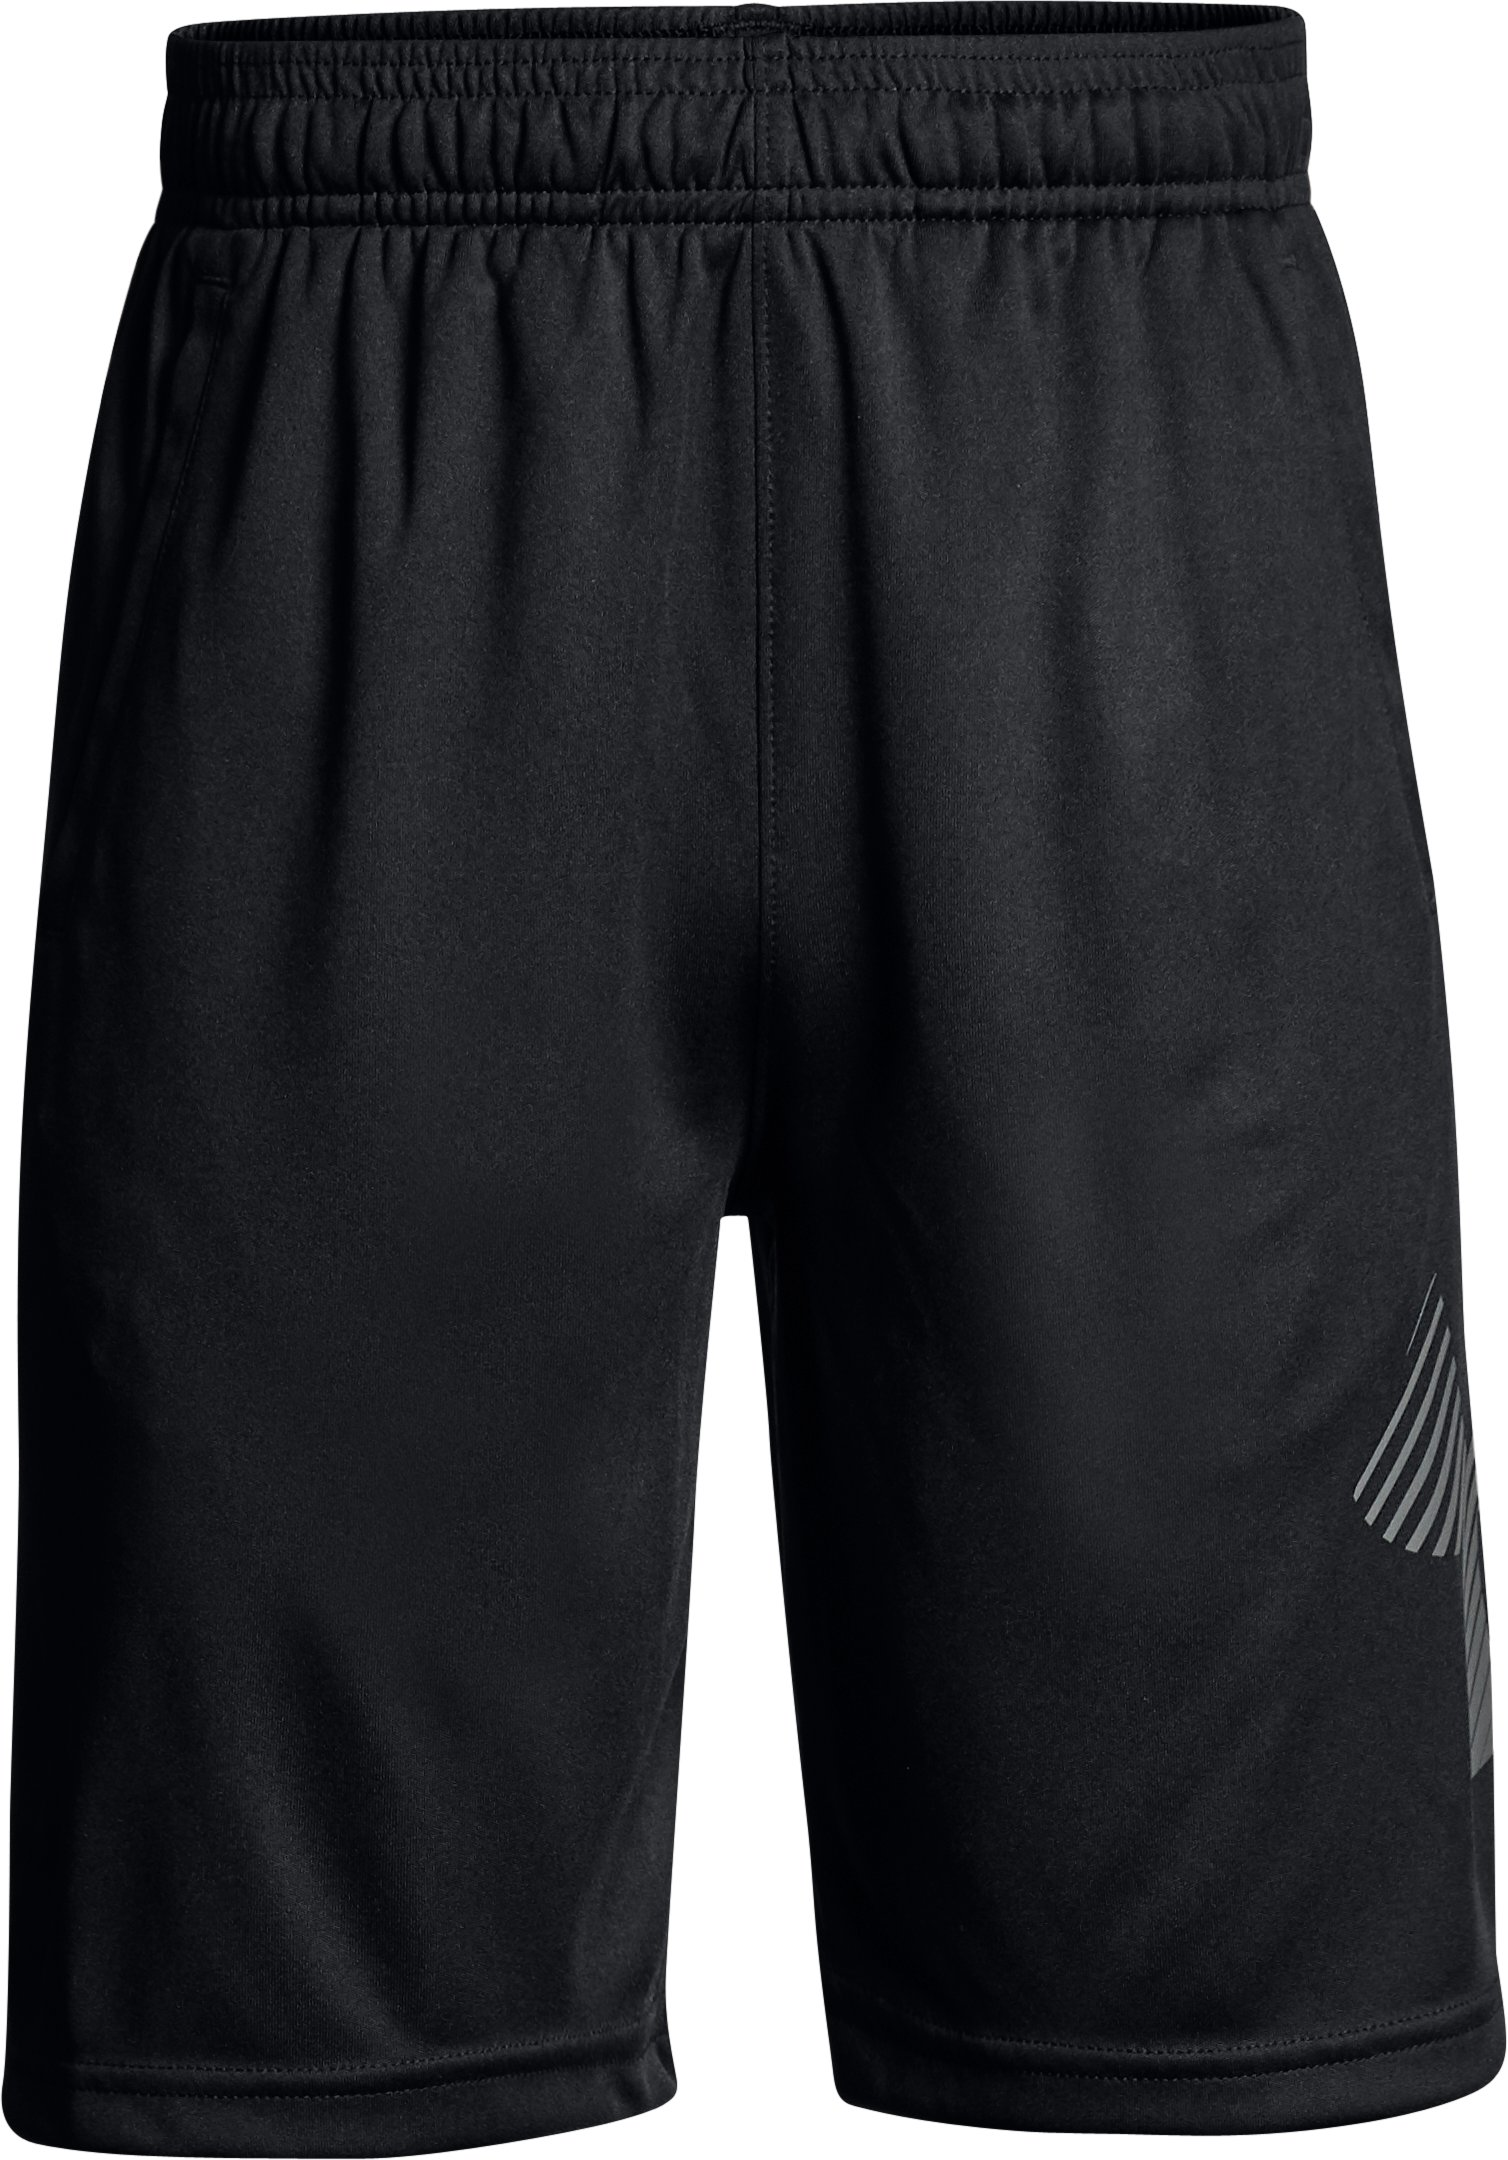 Boys' UA Renegade Solid Shorts, Black